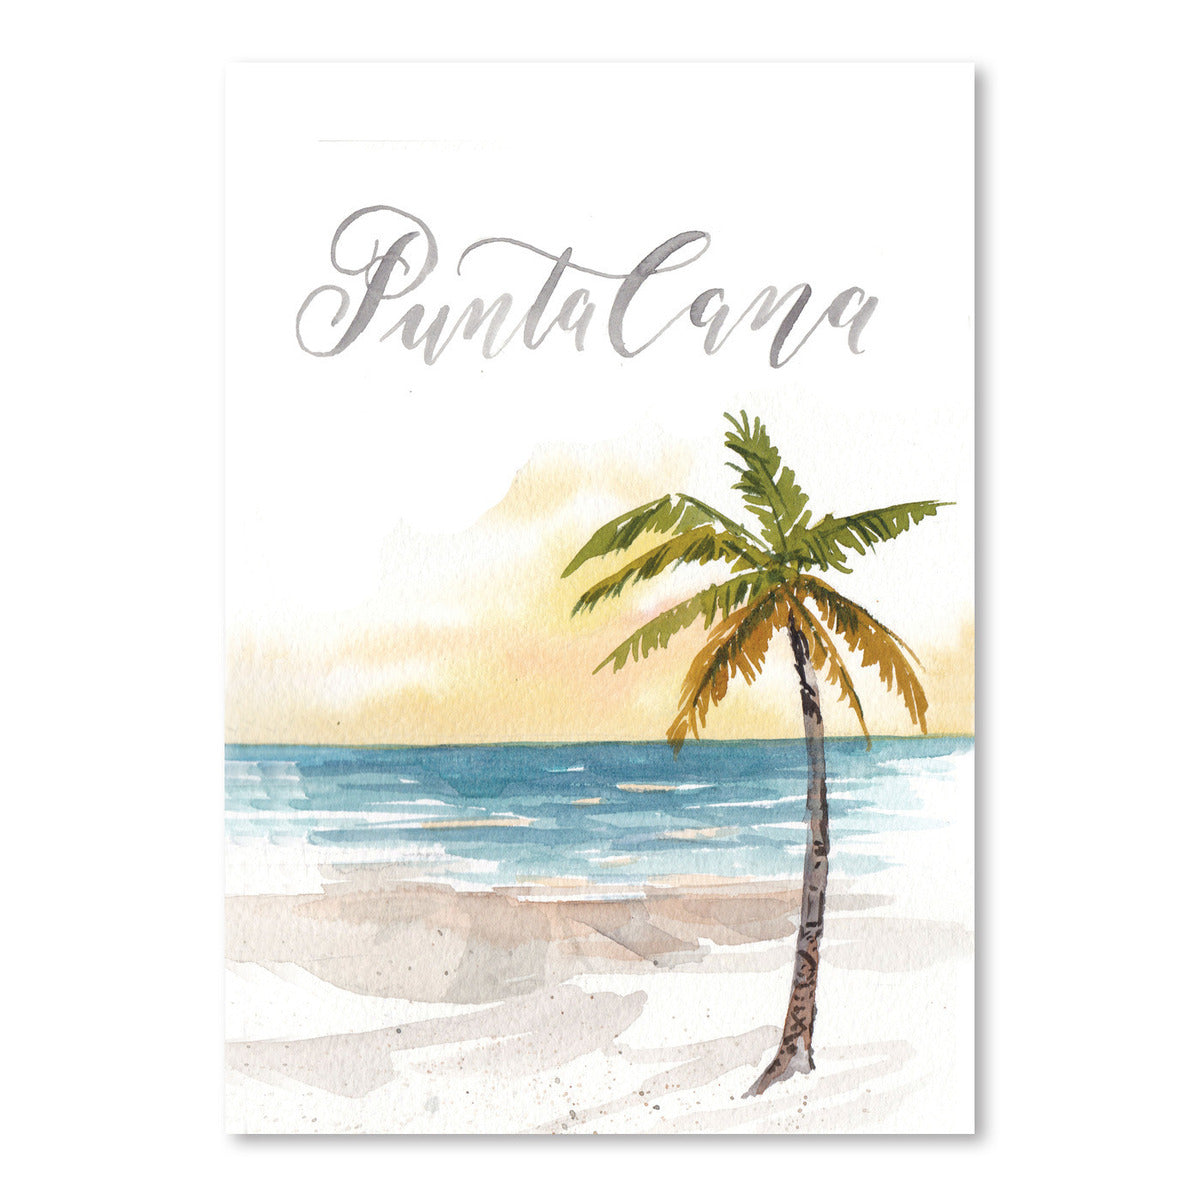 Punta Cana by Cami Monet - Art Print - Americanflat